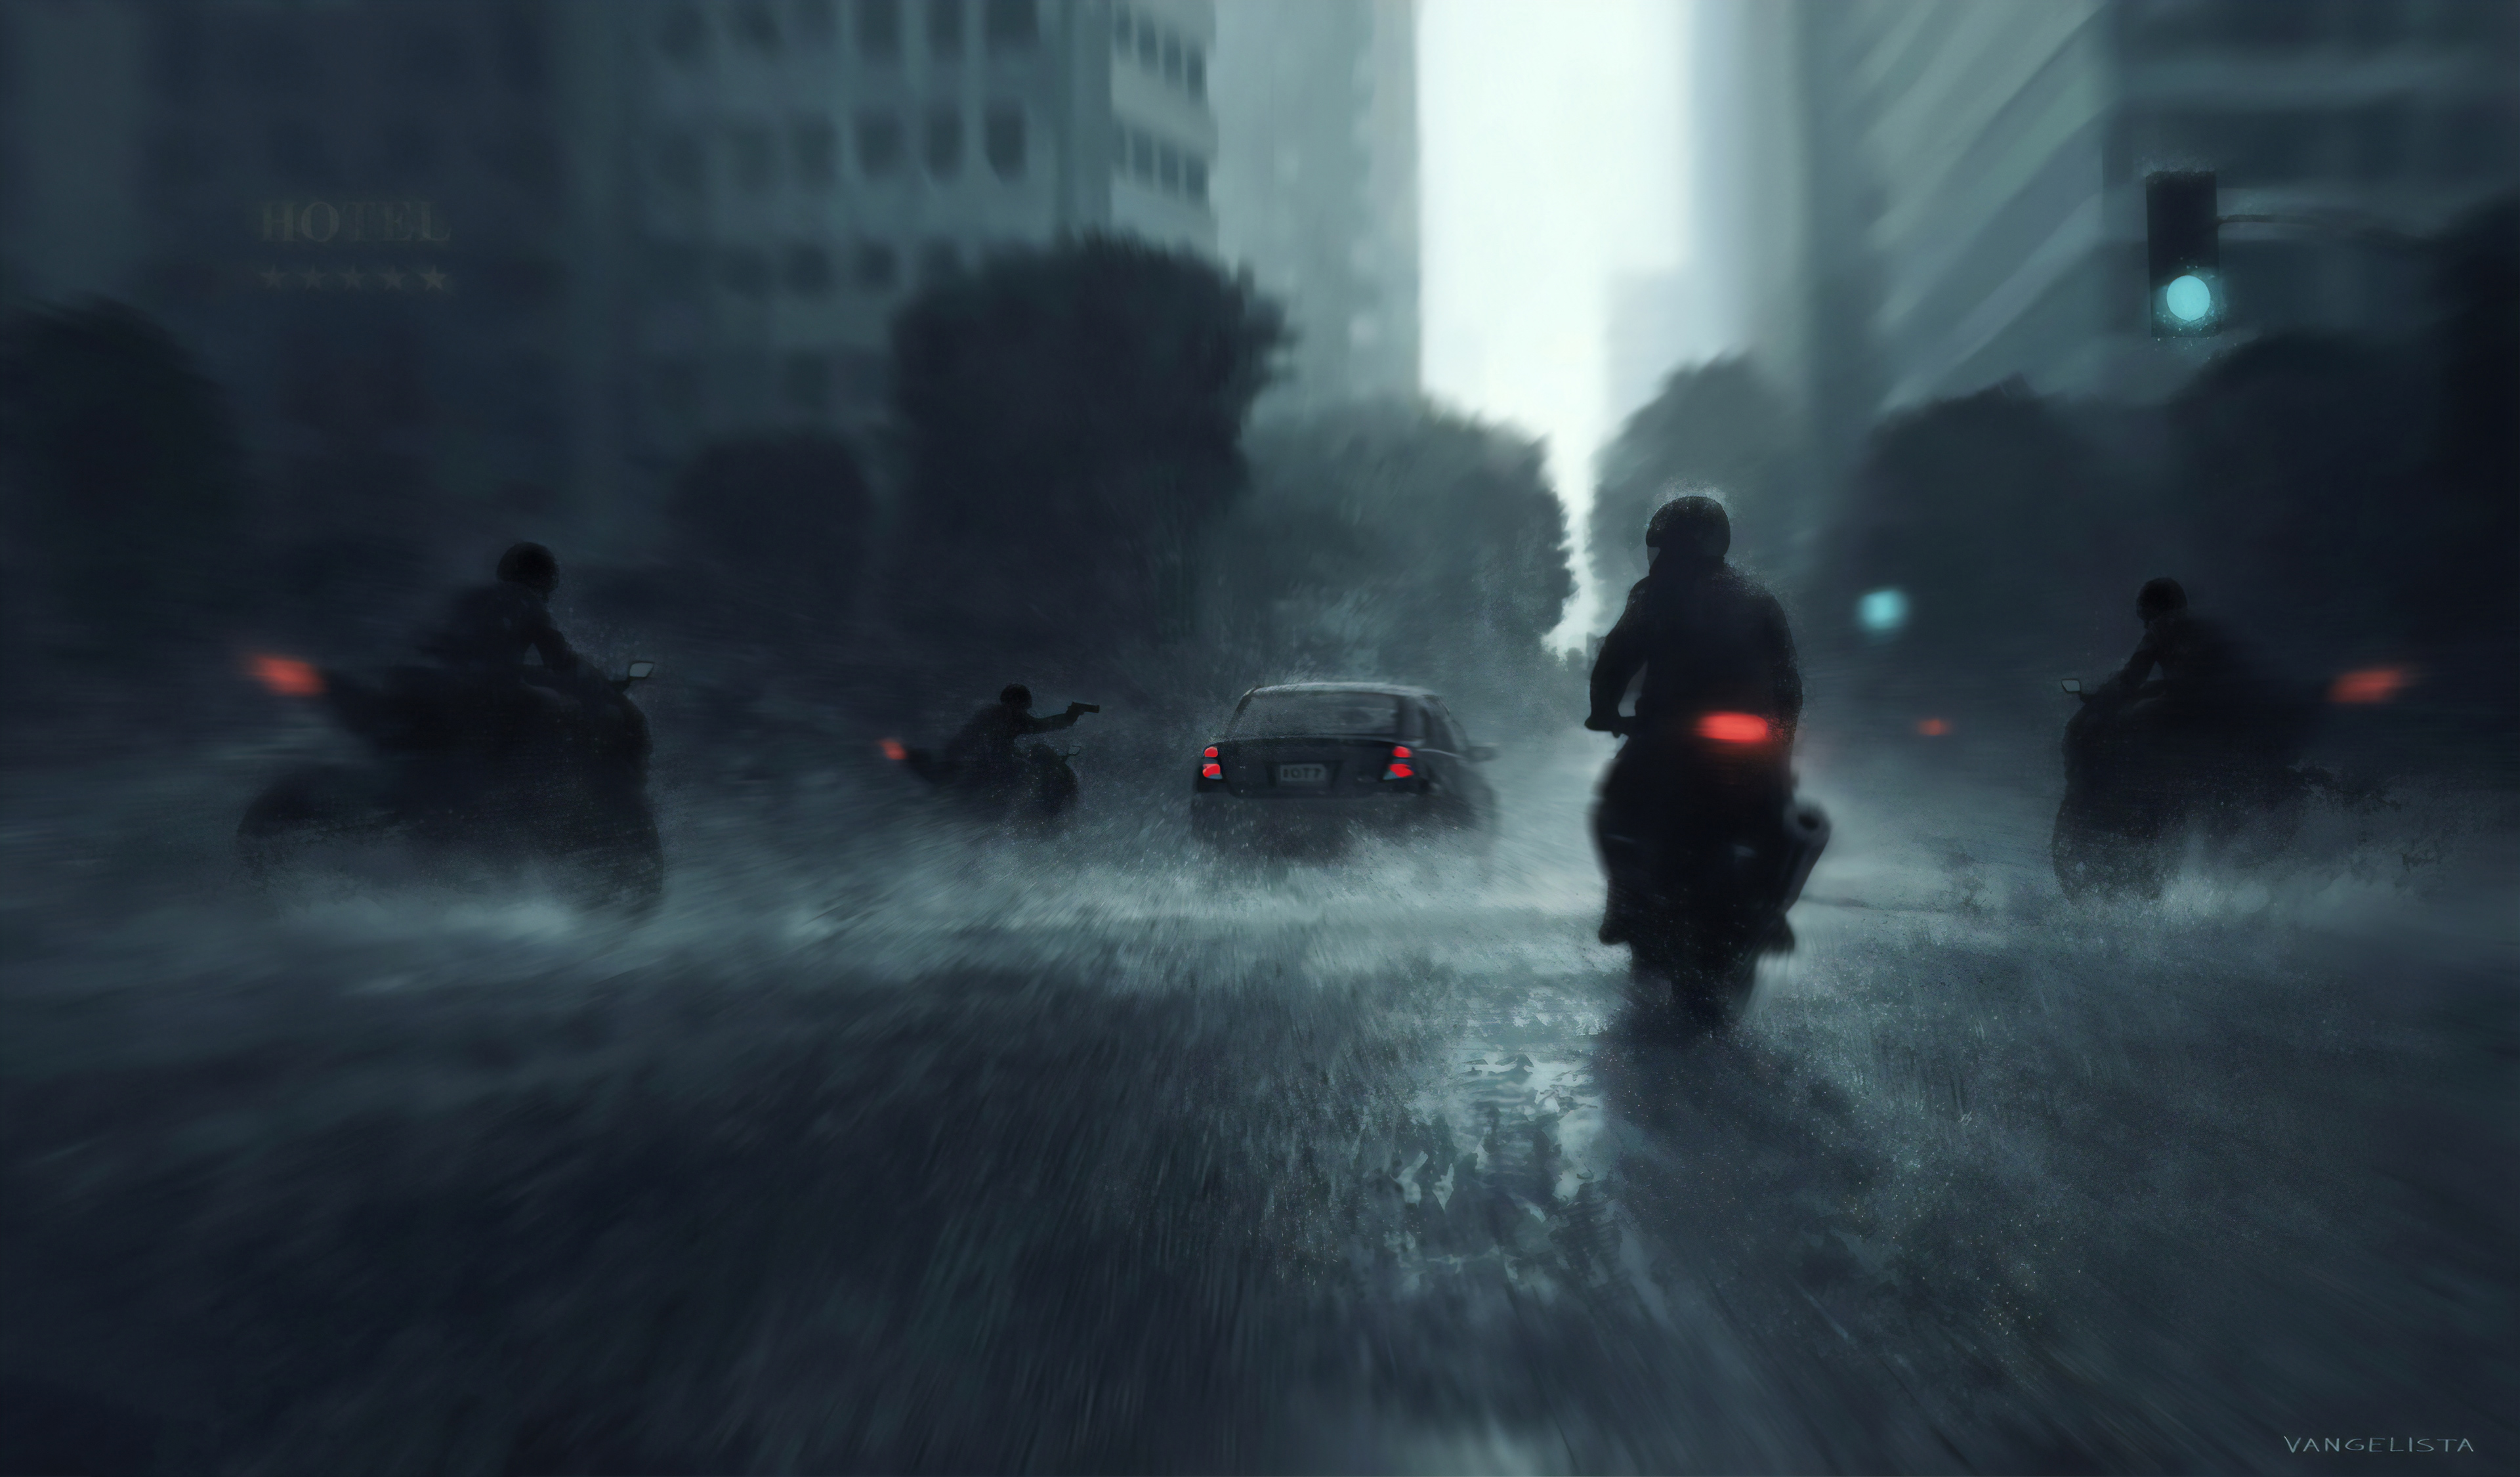 General 3840x2250 digital digital art artwork illustration concept art city city lights vehicle car motorcycle motorcyclist pistol silhouette architecture building trees rain cityscape lights urban street street light traffic lights